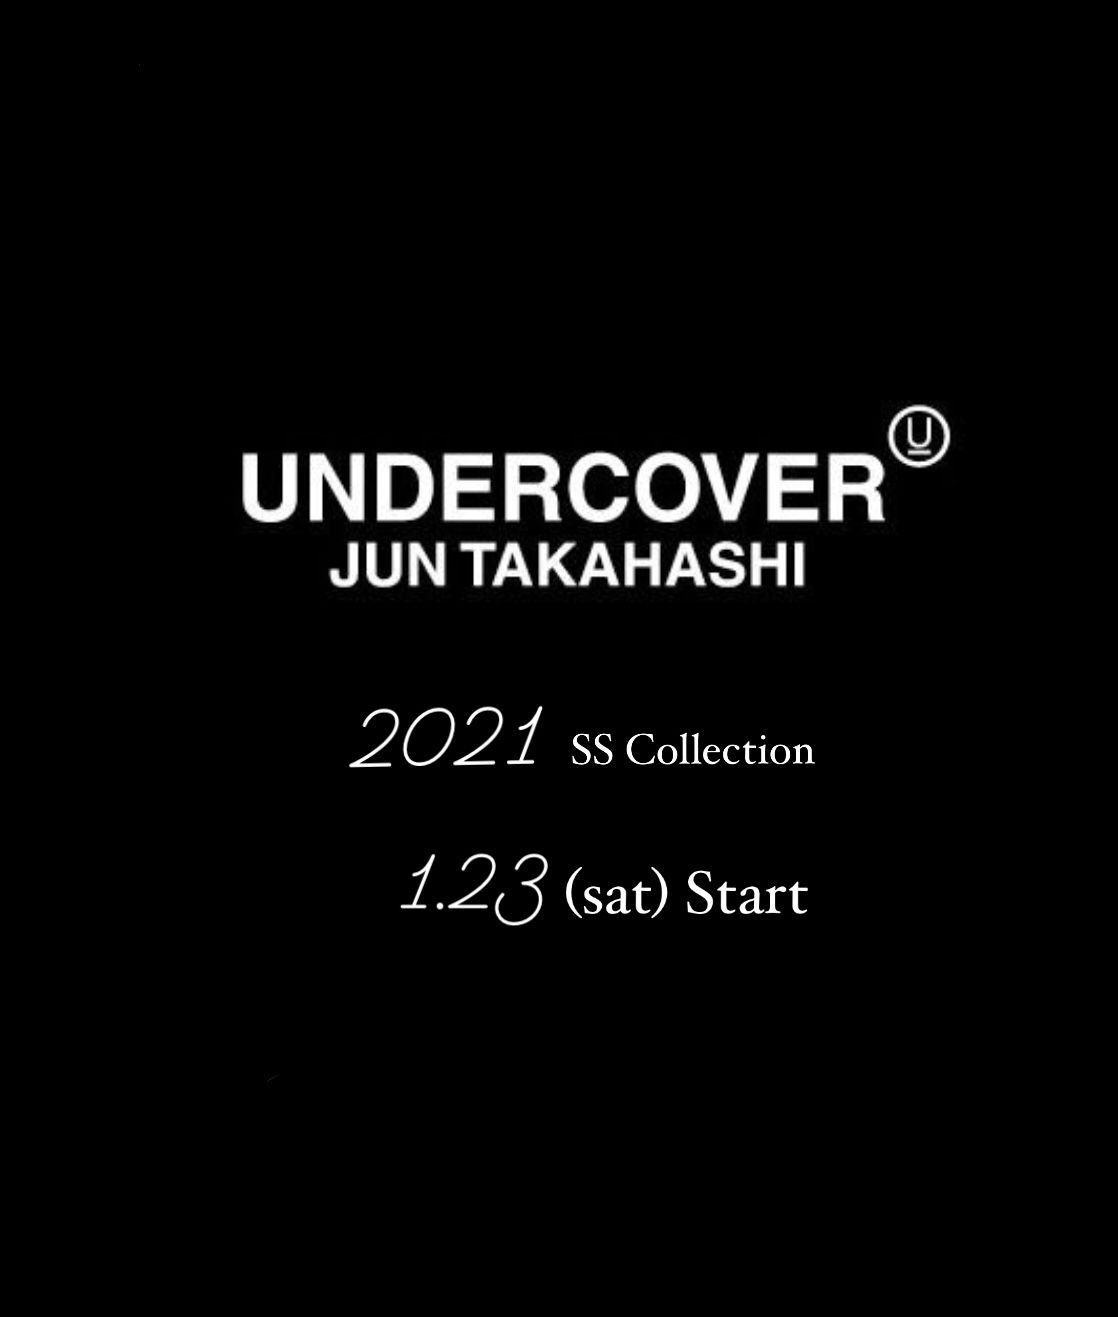 UNDERCOVER 2021SS Collection 1月23日(土)スタートの写真